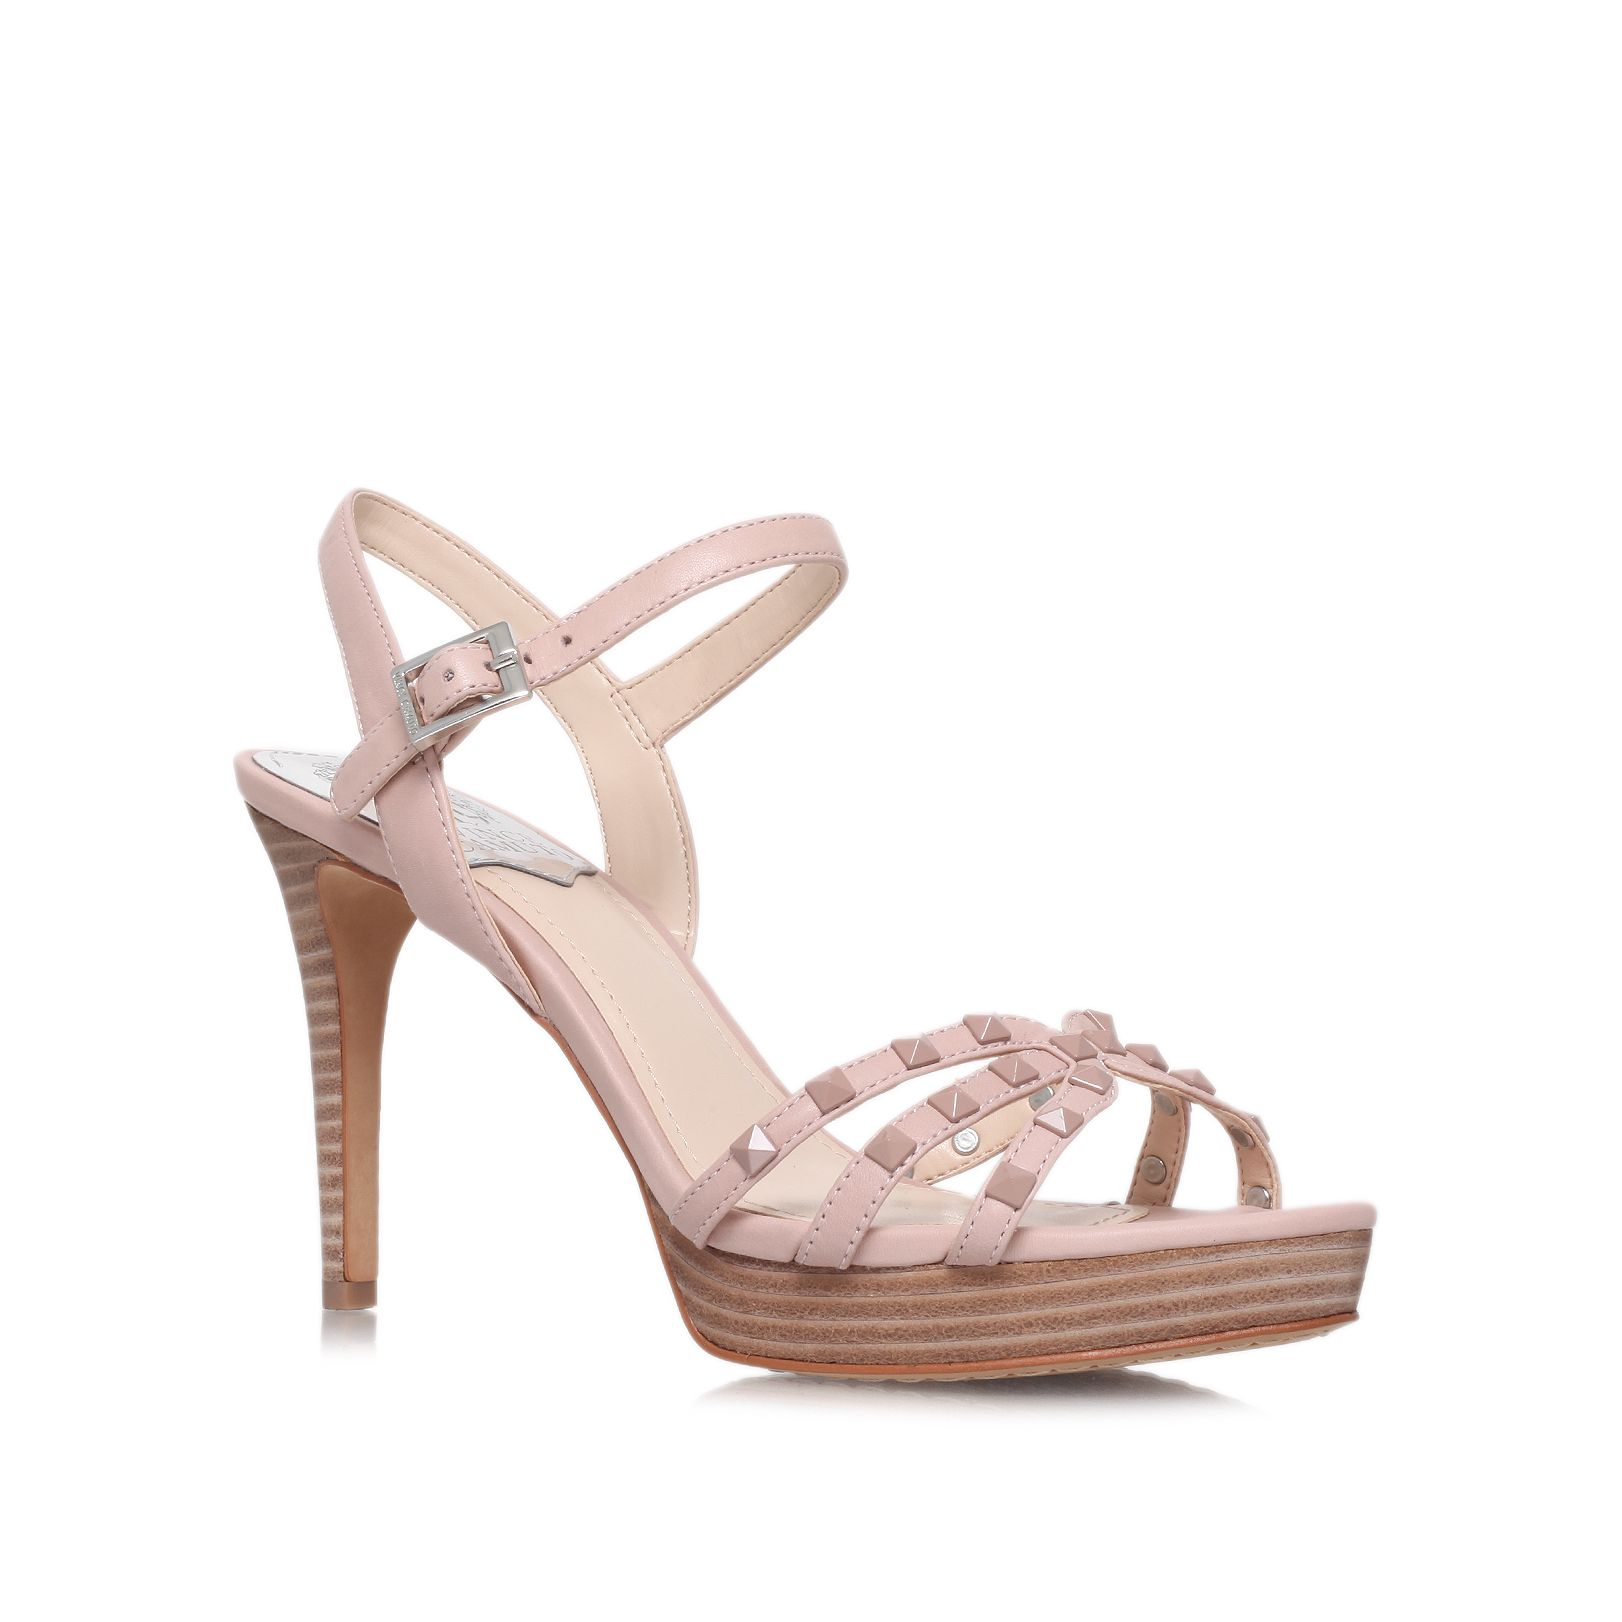 Rimali high heeled sandals